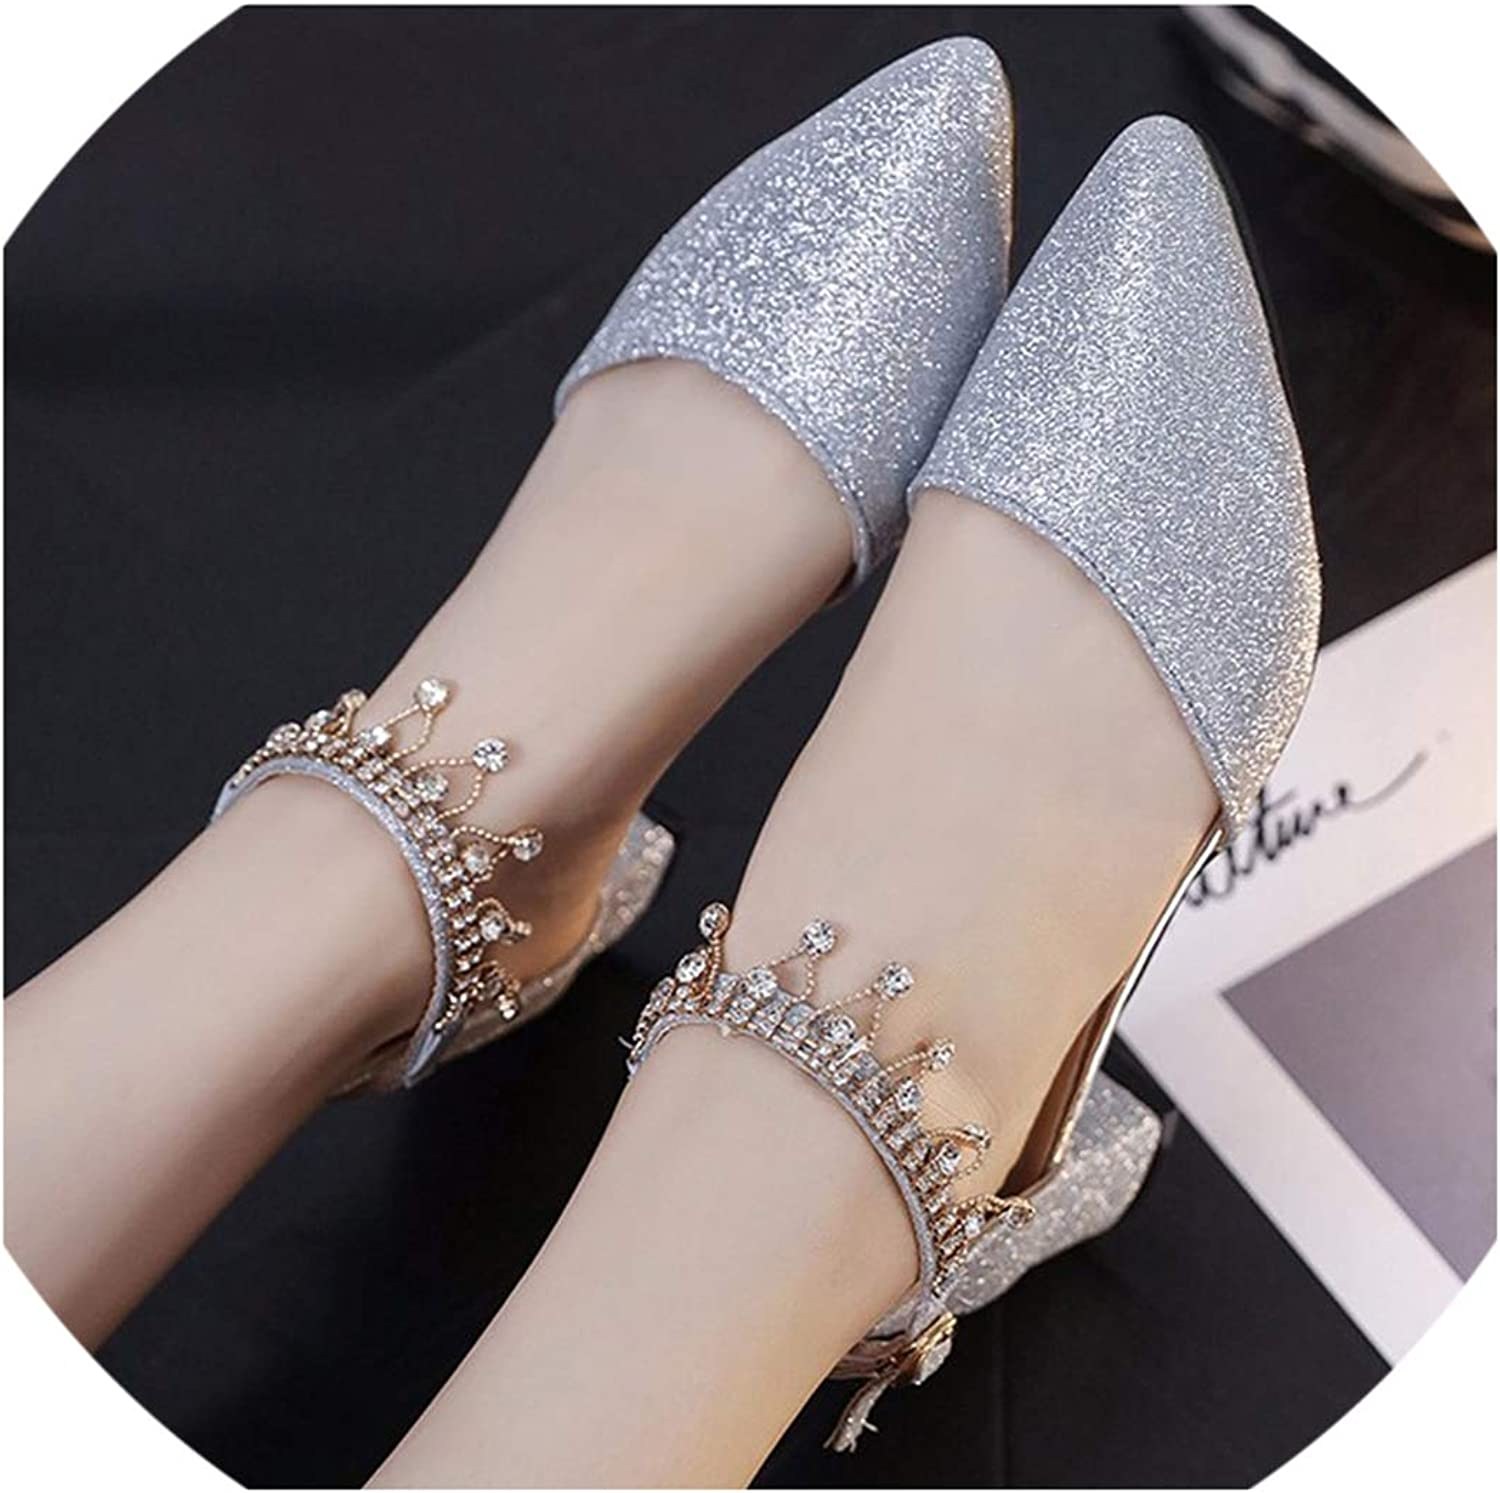 High Heels Bling Pointed Toe Platform String Bead Sandals Wedding shoes Casual Extreme